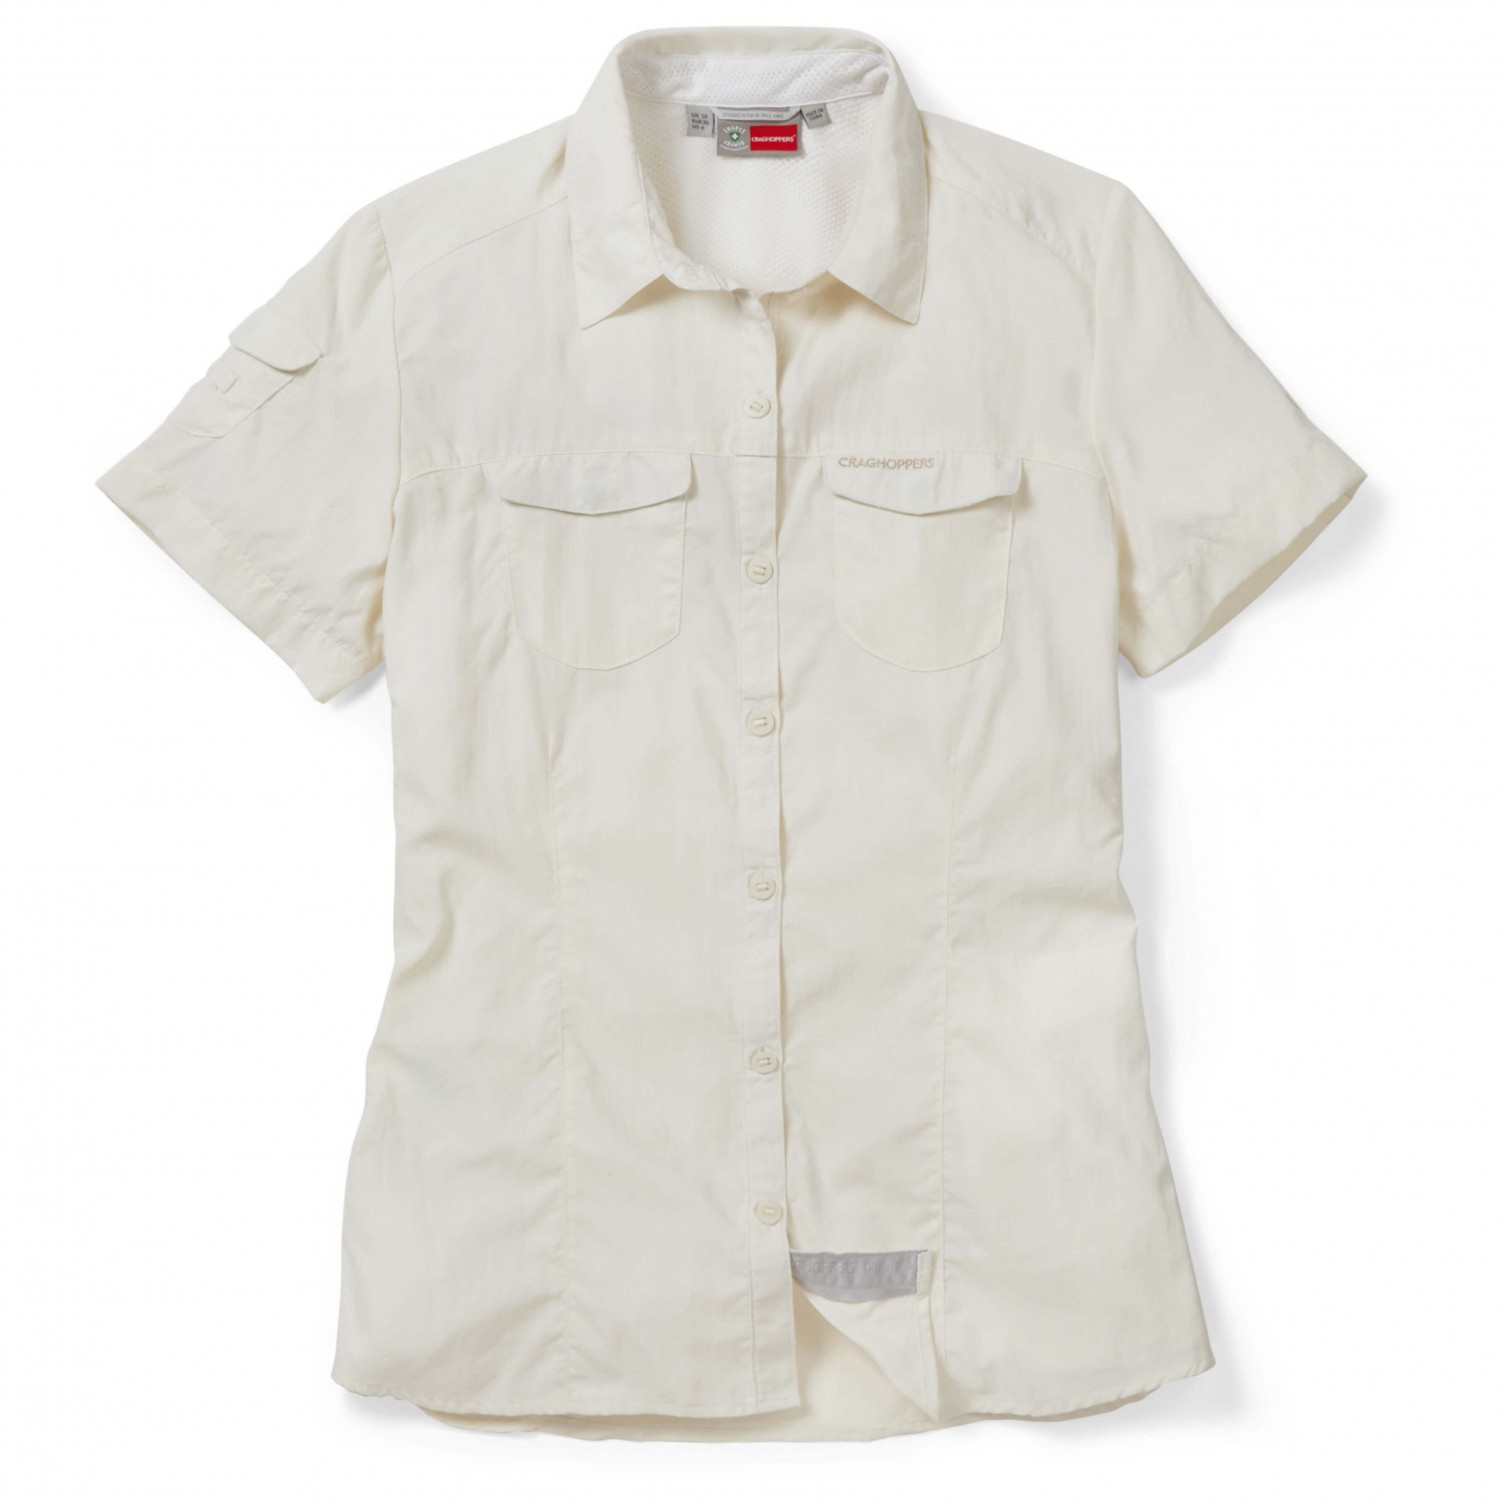 Craghoppers Short Adventure Sleeved Women'sBuy Nosilife Shirt YW9eH2IED